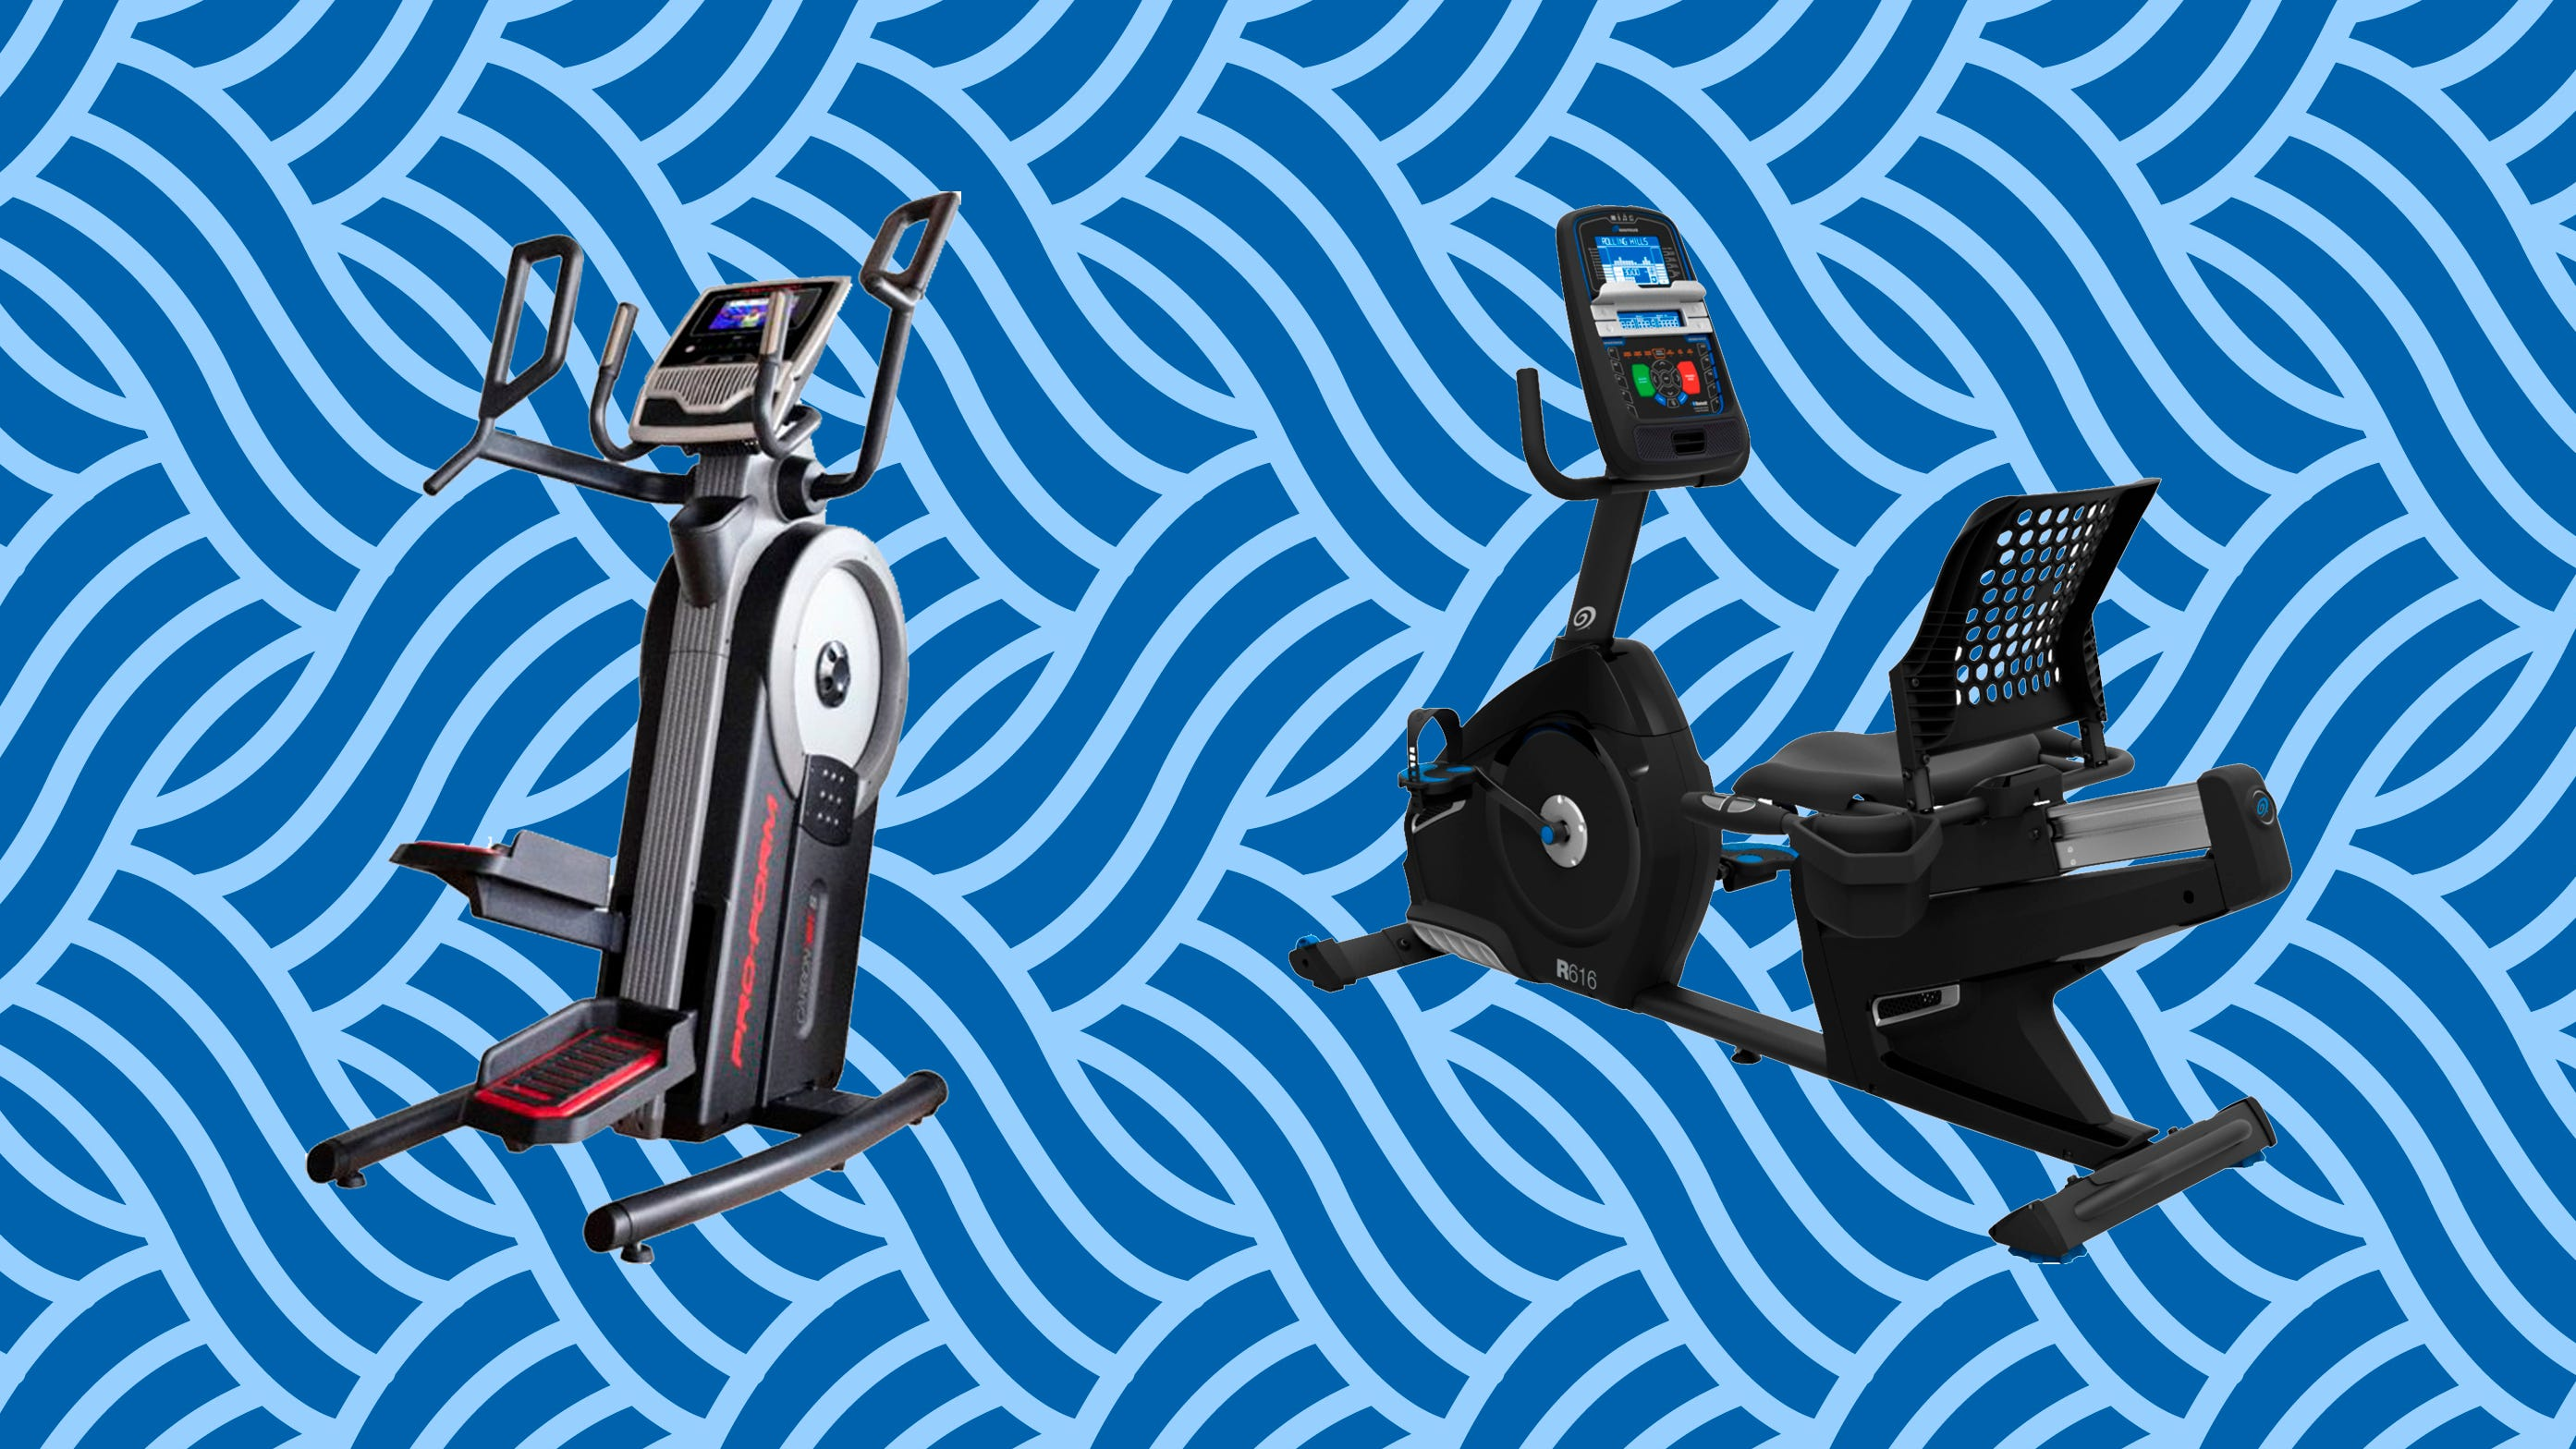 Treadmills and other home gym equipment are majorly discounted right now at Best Buy